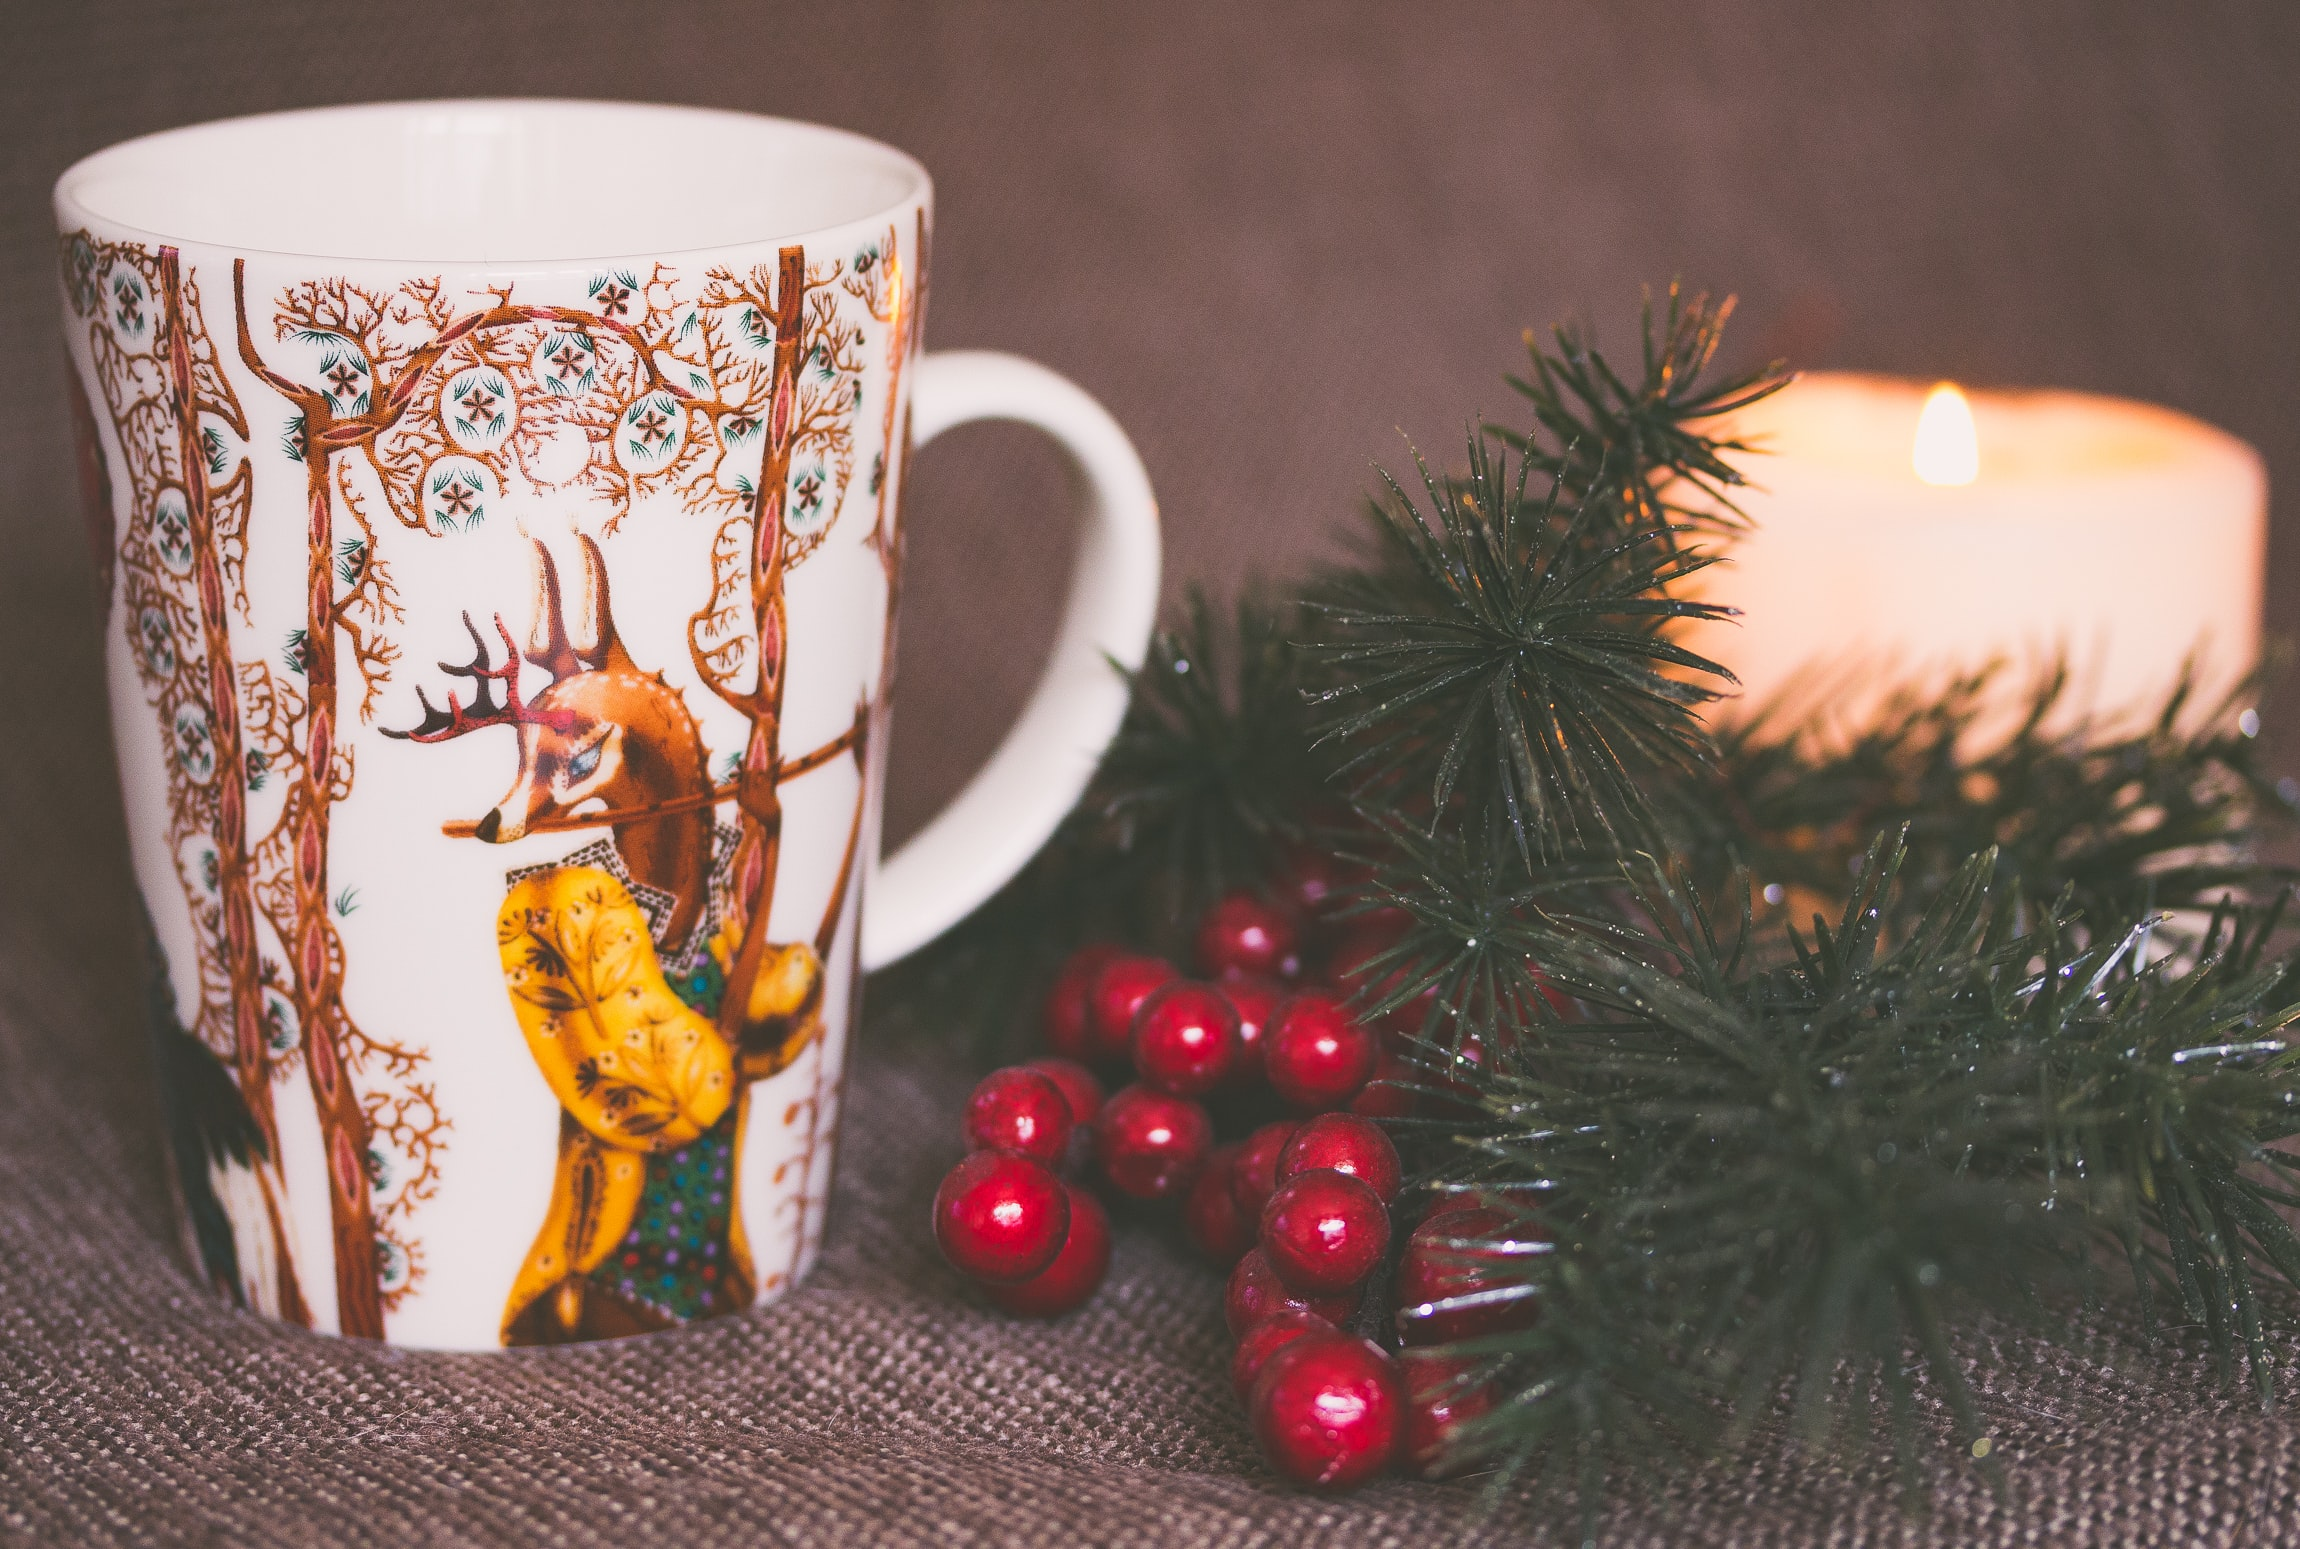 white and brown print ceramic mug near red mistletoe and candle